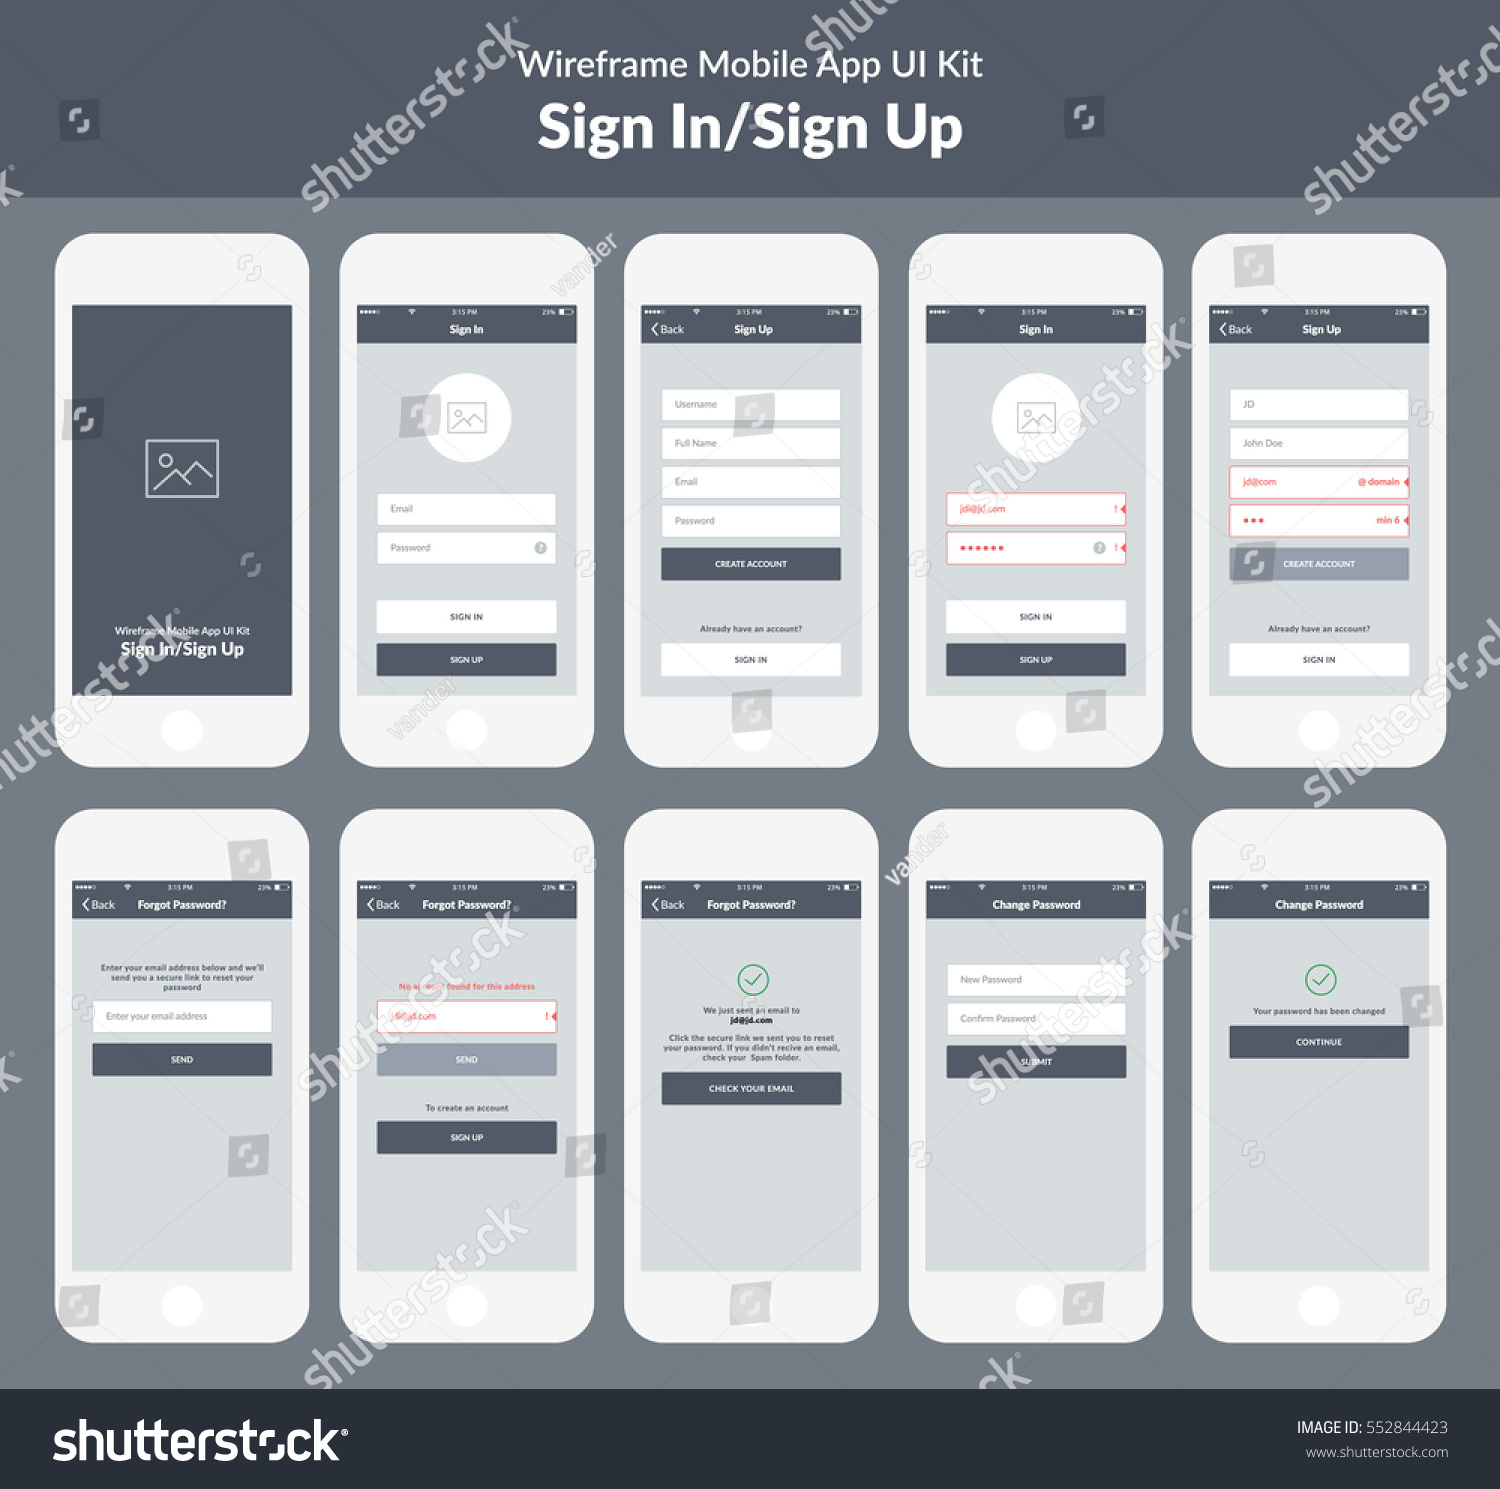 Shutterstock login and password / T mobile phone top up